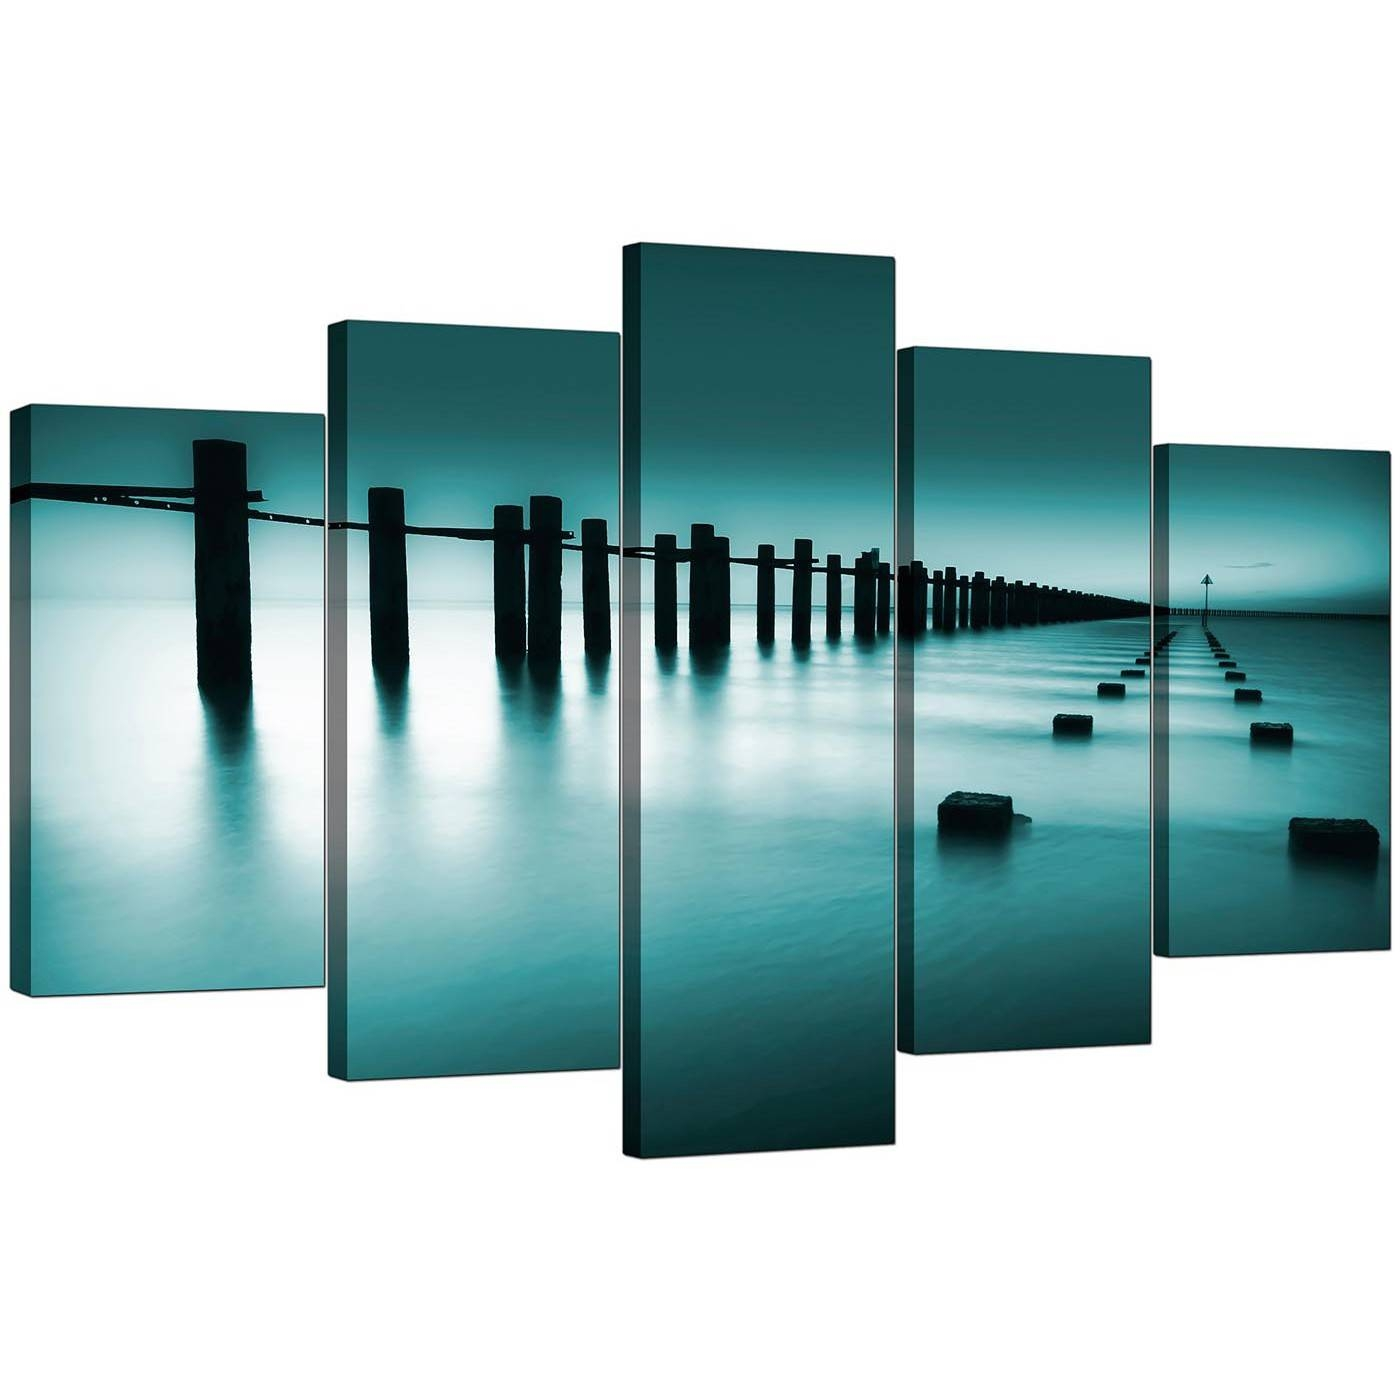 Extra Large Sea Canvas Wall Art Five Panel In Teal With Regard To Most Current Large Teal Wall Art (View 8 of 20)